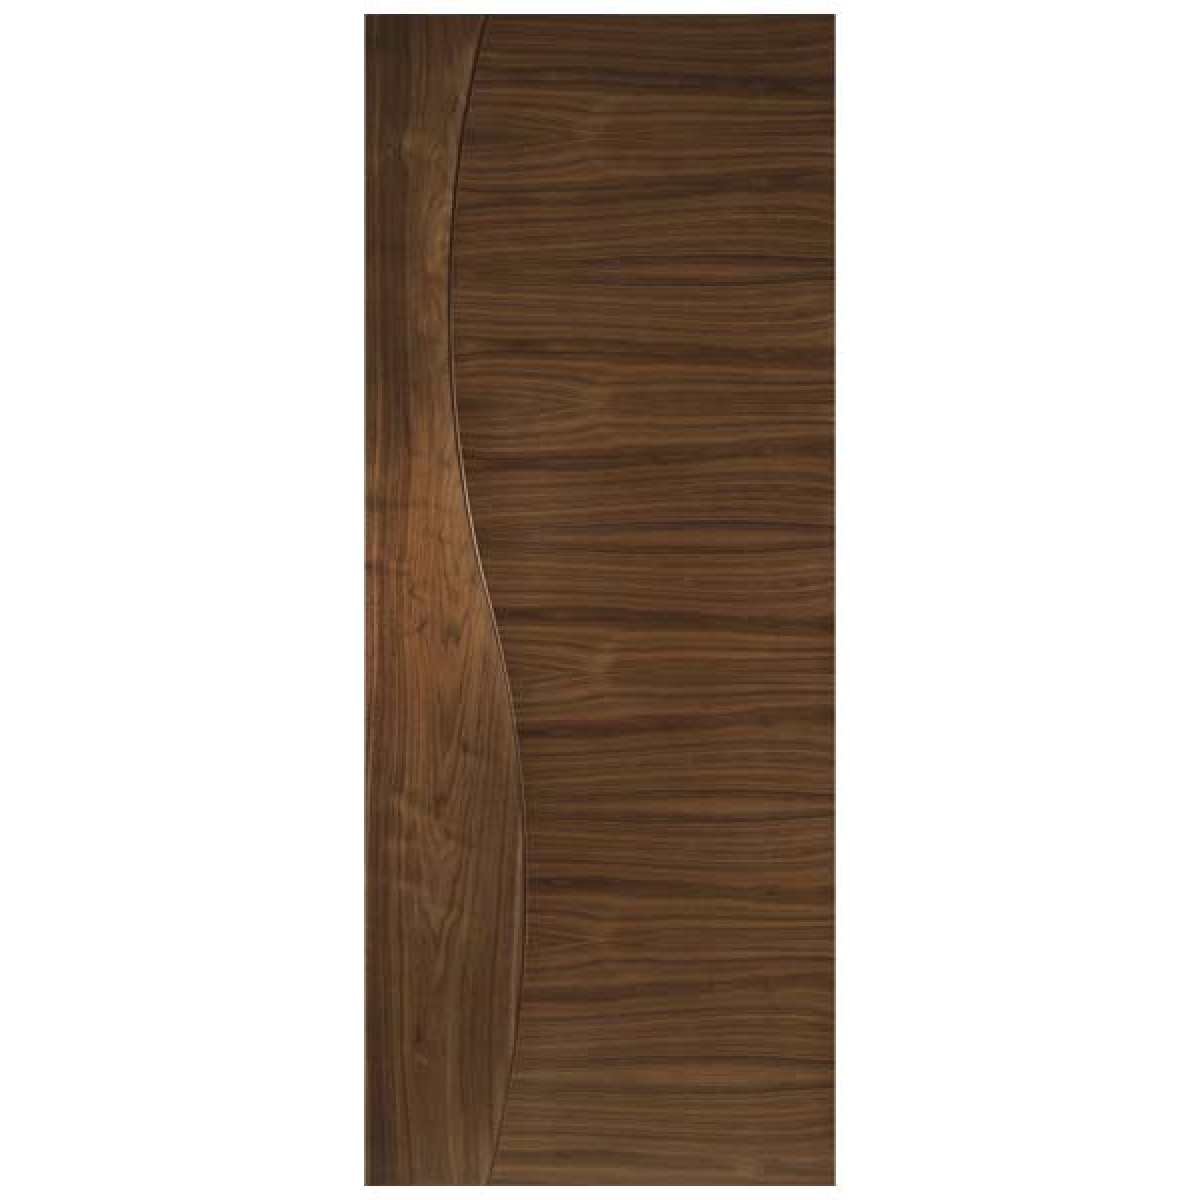 cadiz walnut flat websters Image by Websters Timber